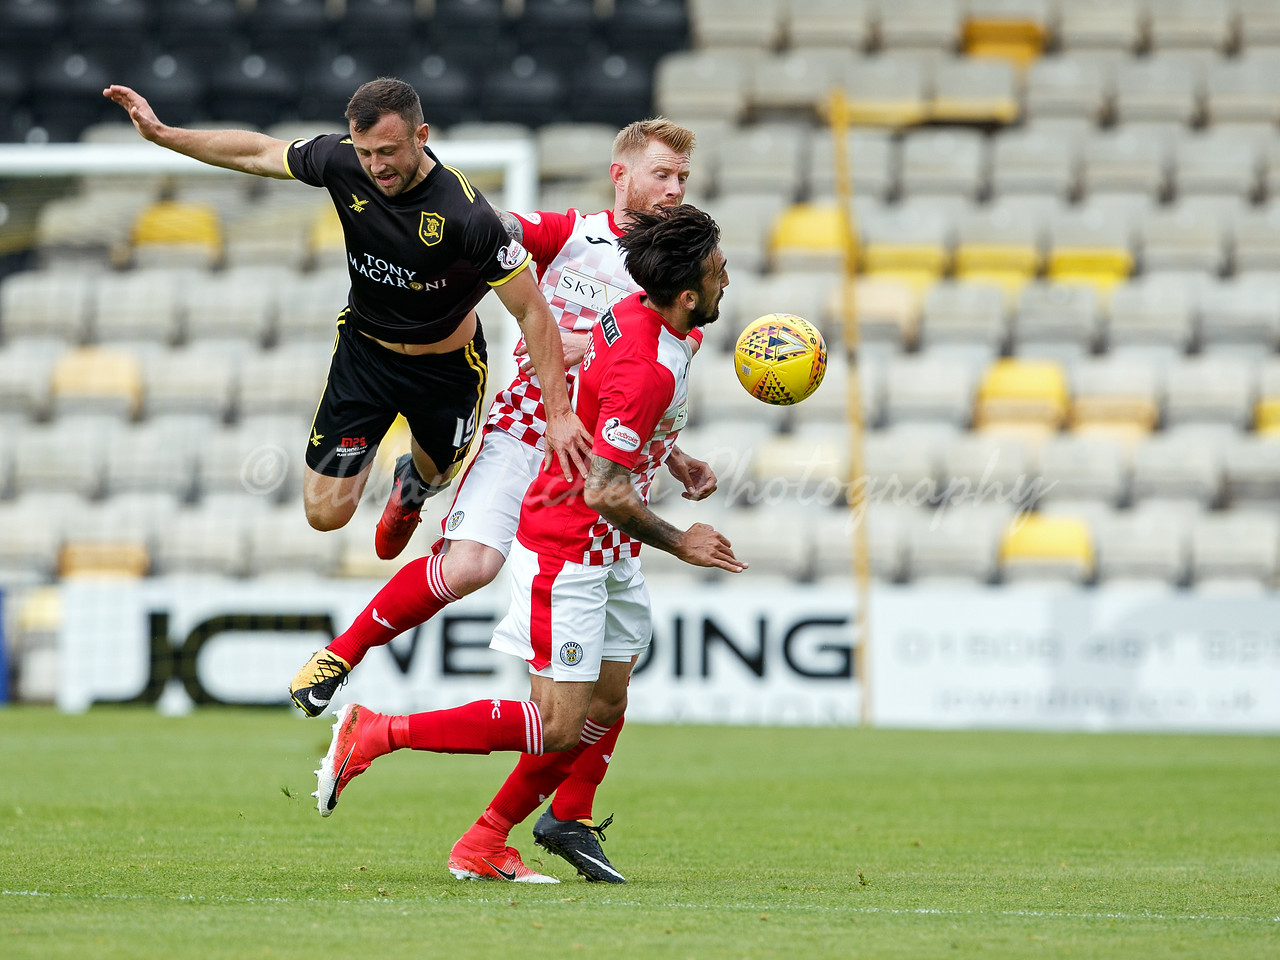 19/08/17 LADBROKES PREMIERSHIP<br />  LIVINGSTON v ST MIRREN (1-3)<br /> TONY MACARONI ARENA - LIVINGSTON